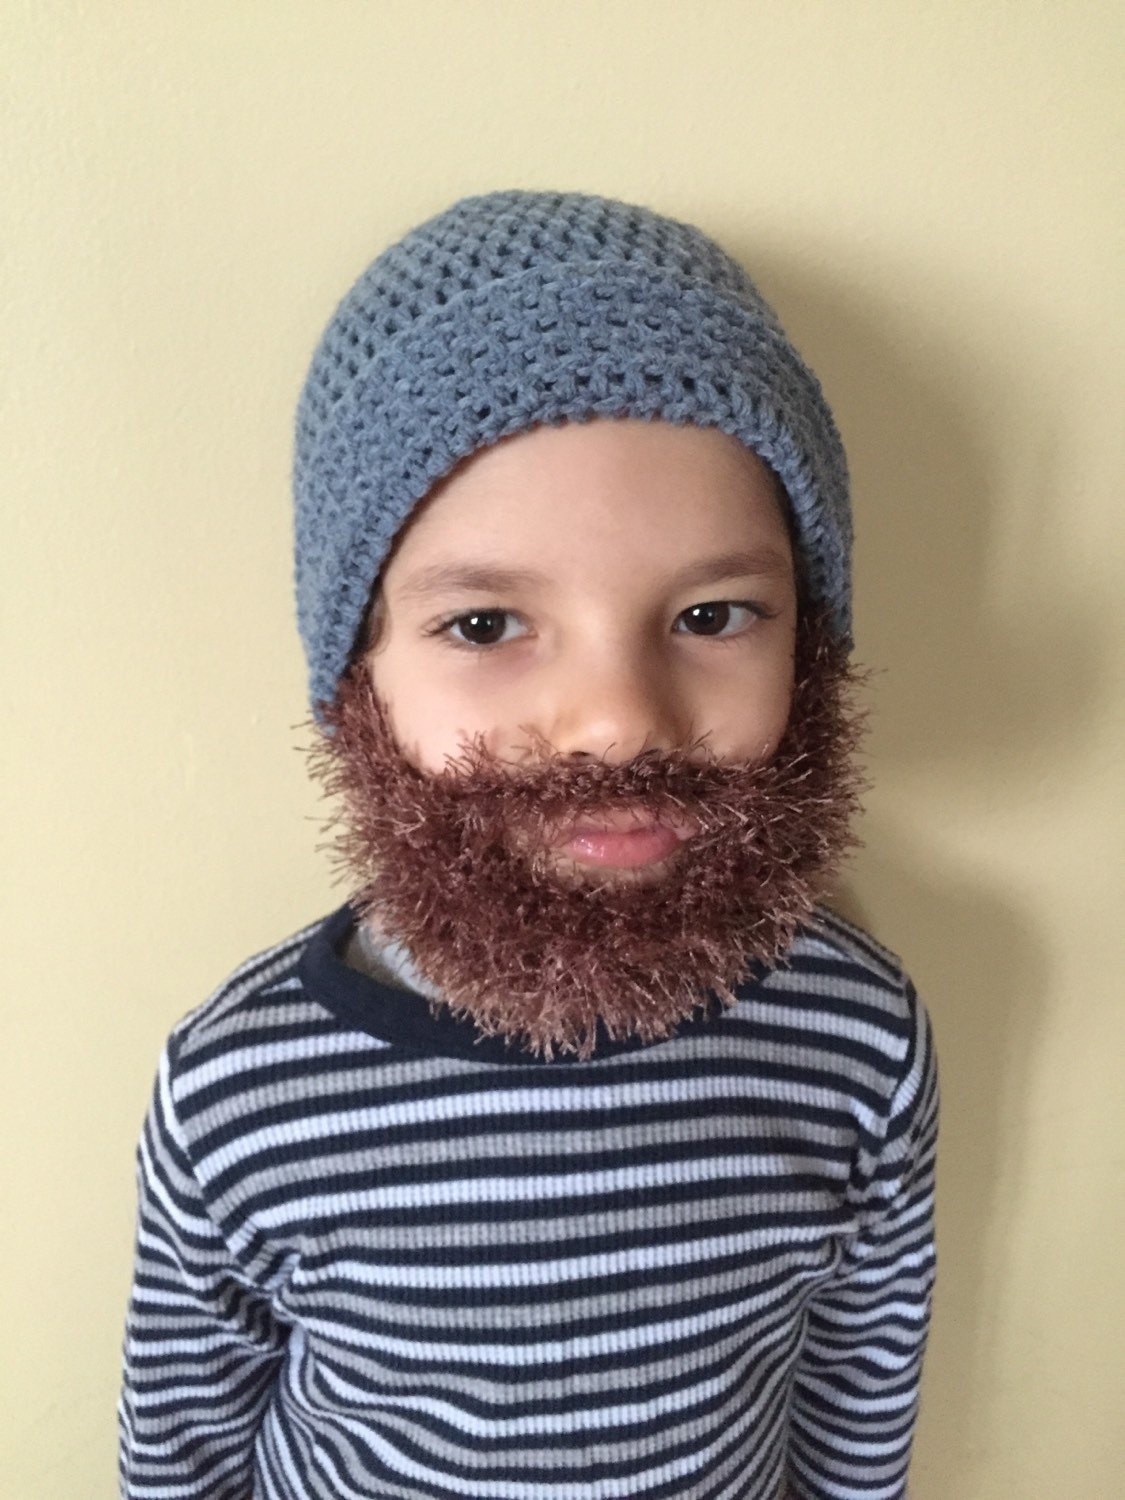 13 Crochet Hats With Beards We're Obsessed With Rugged